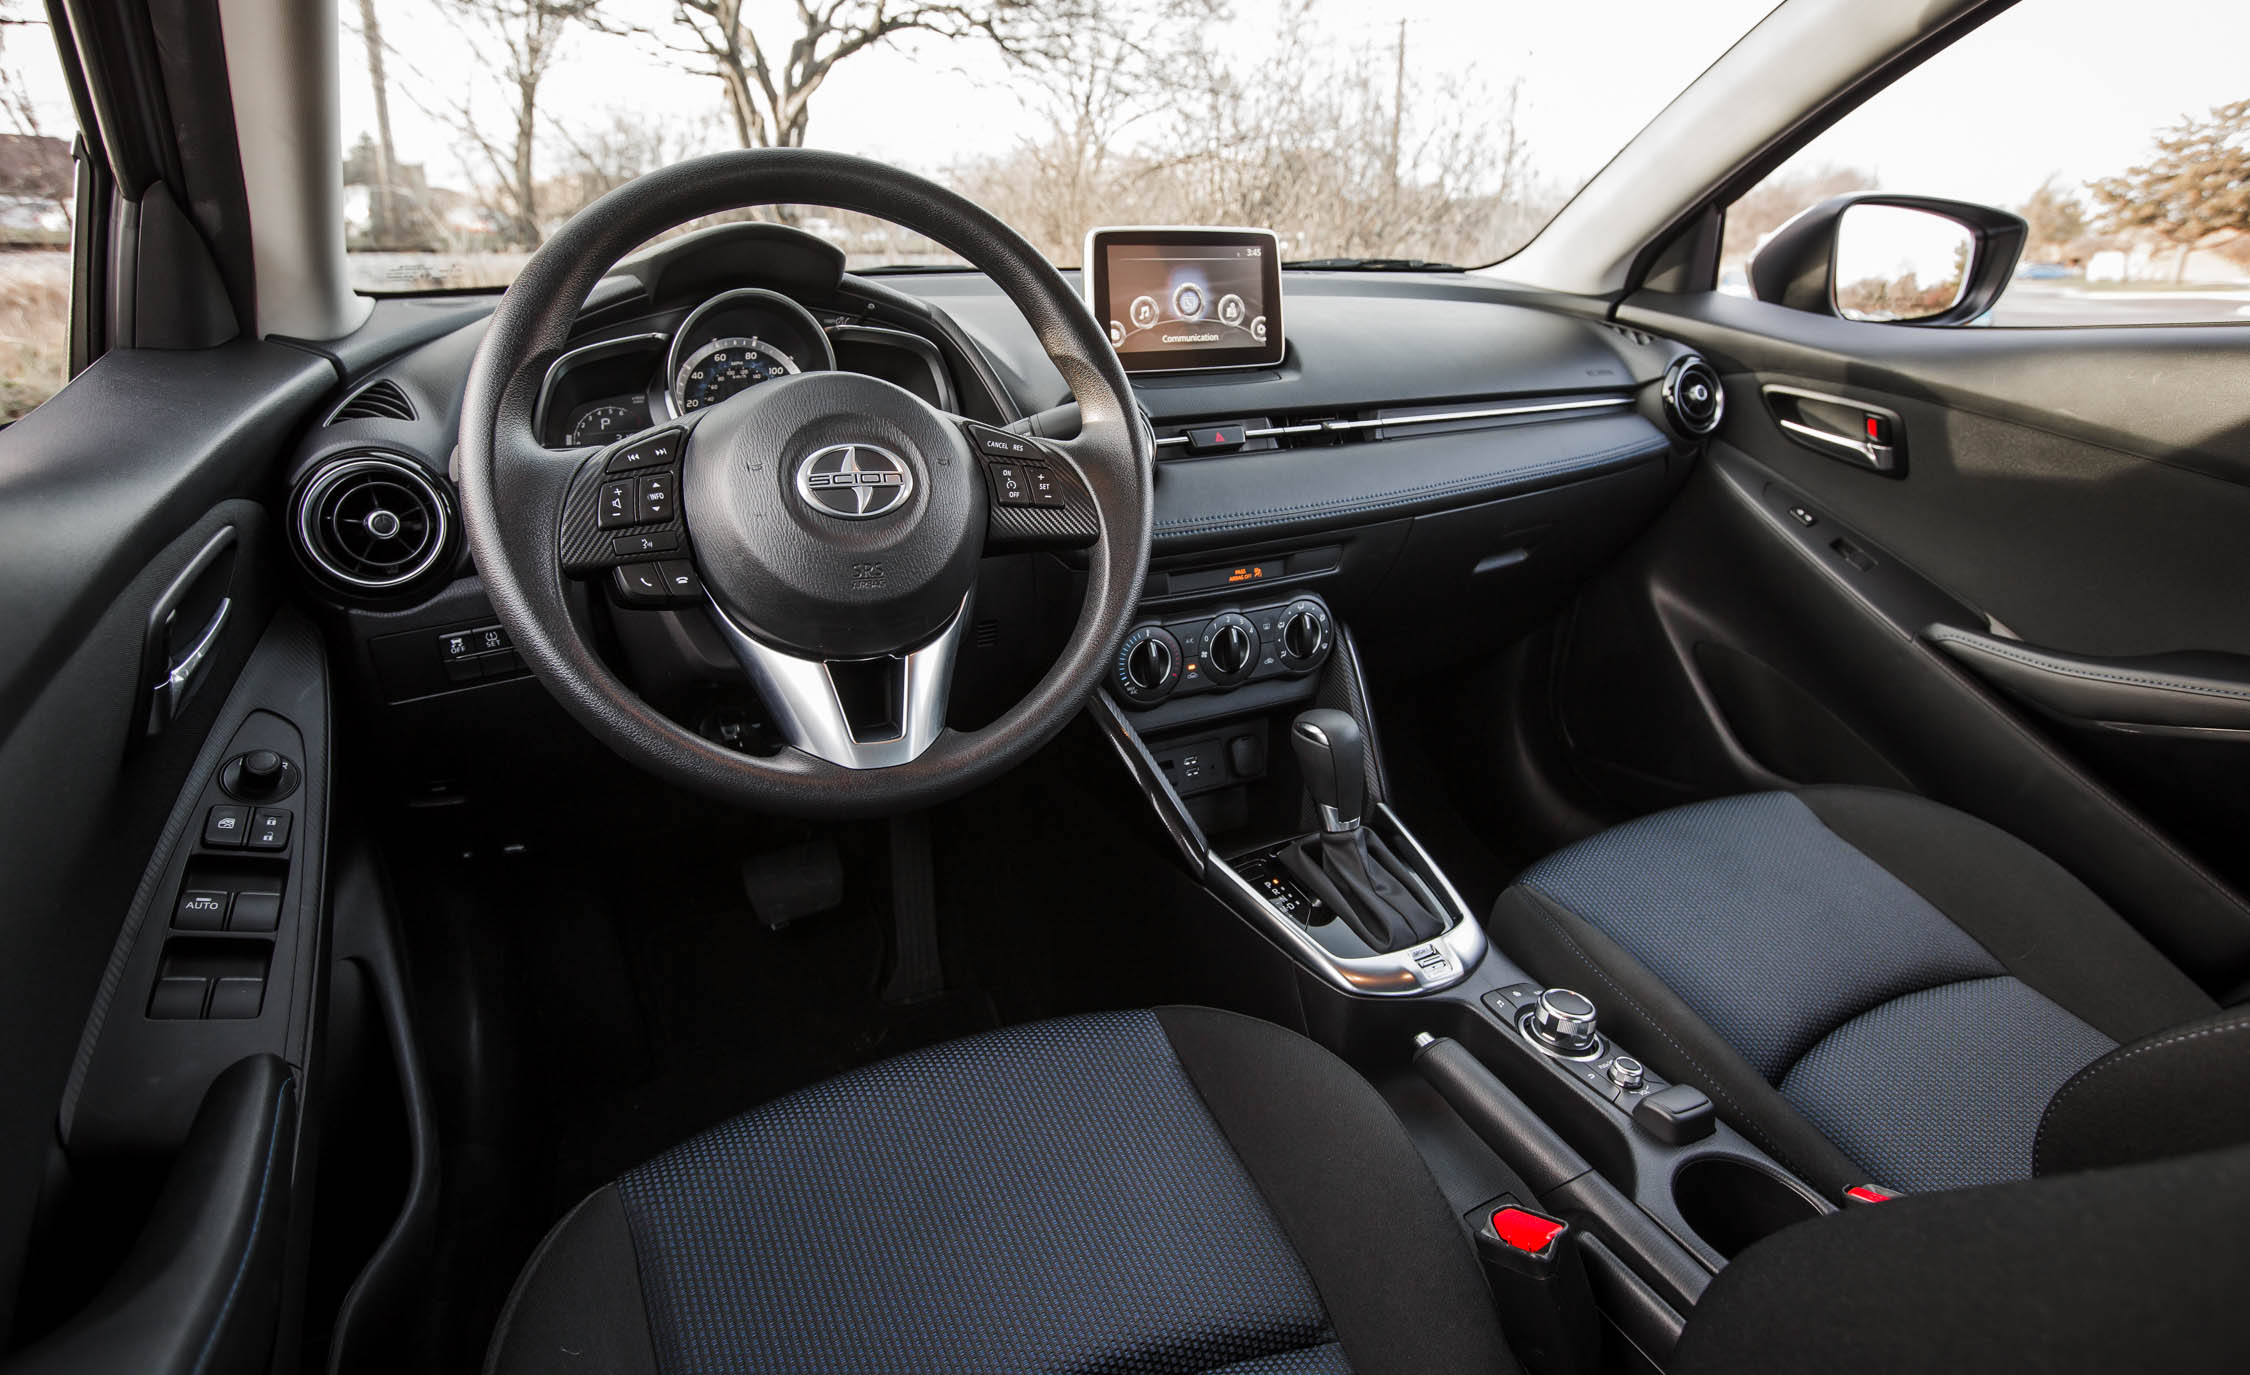 2016 Scion iA Interior Cockpit